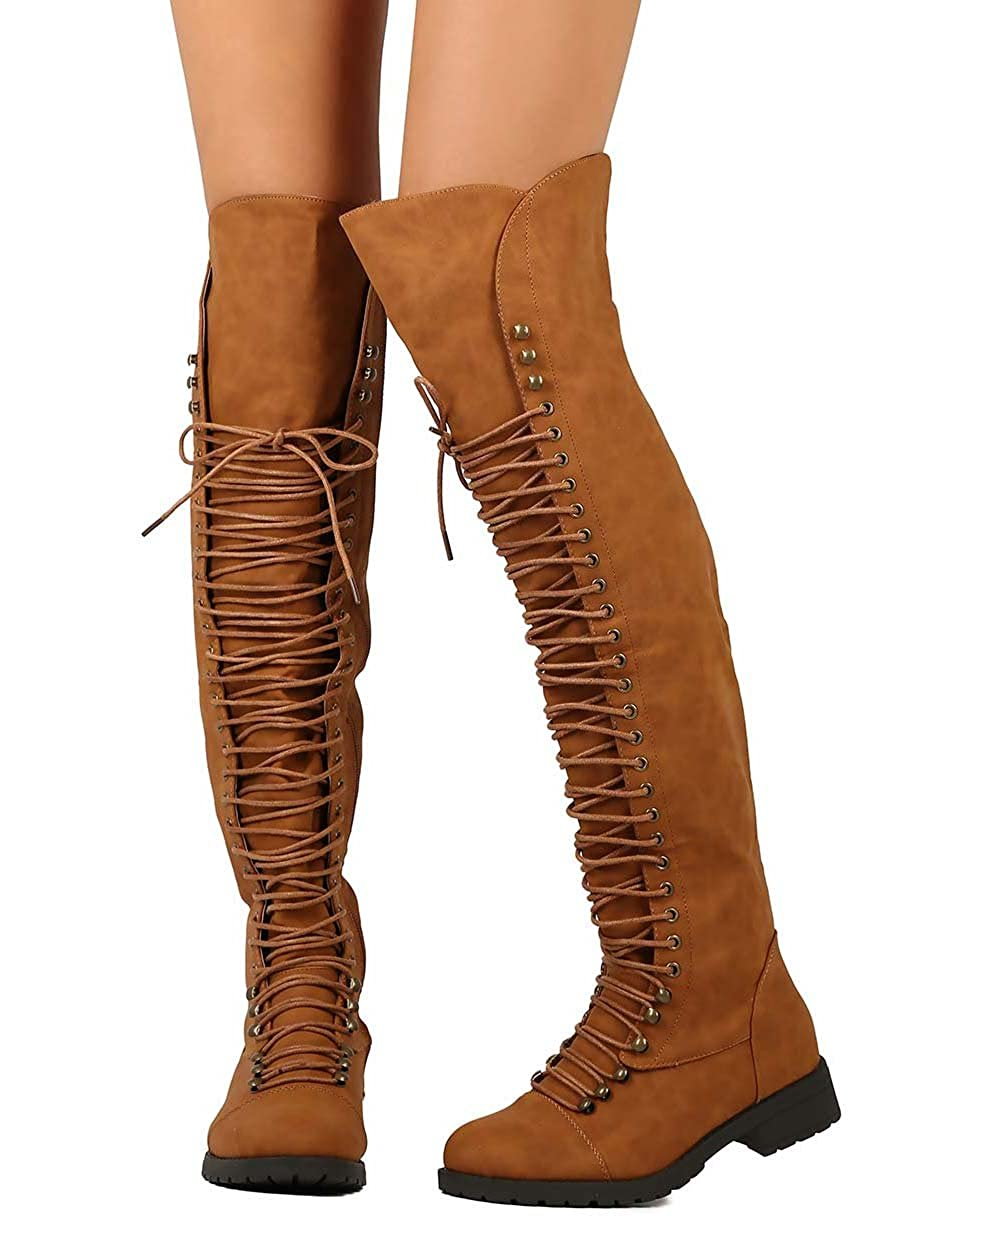 8daa638e7c8 Mark and maddux women leatherette thigh high lace up zip combat boot camel  boots jpg 1001x1251